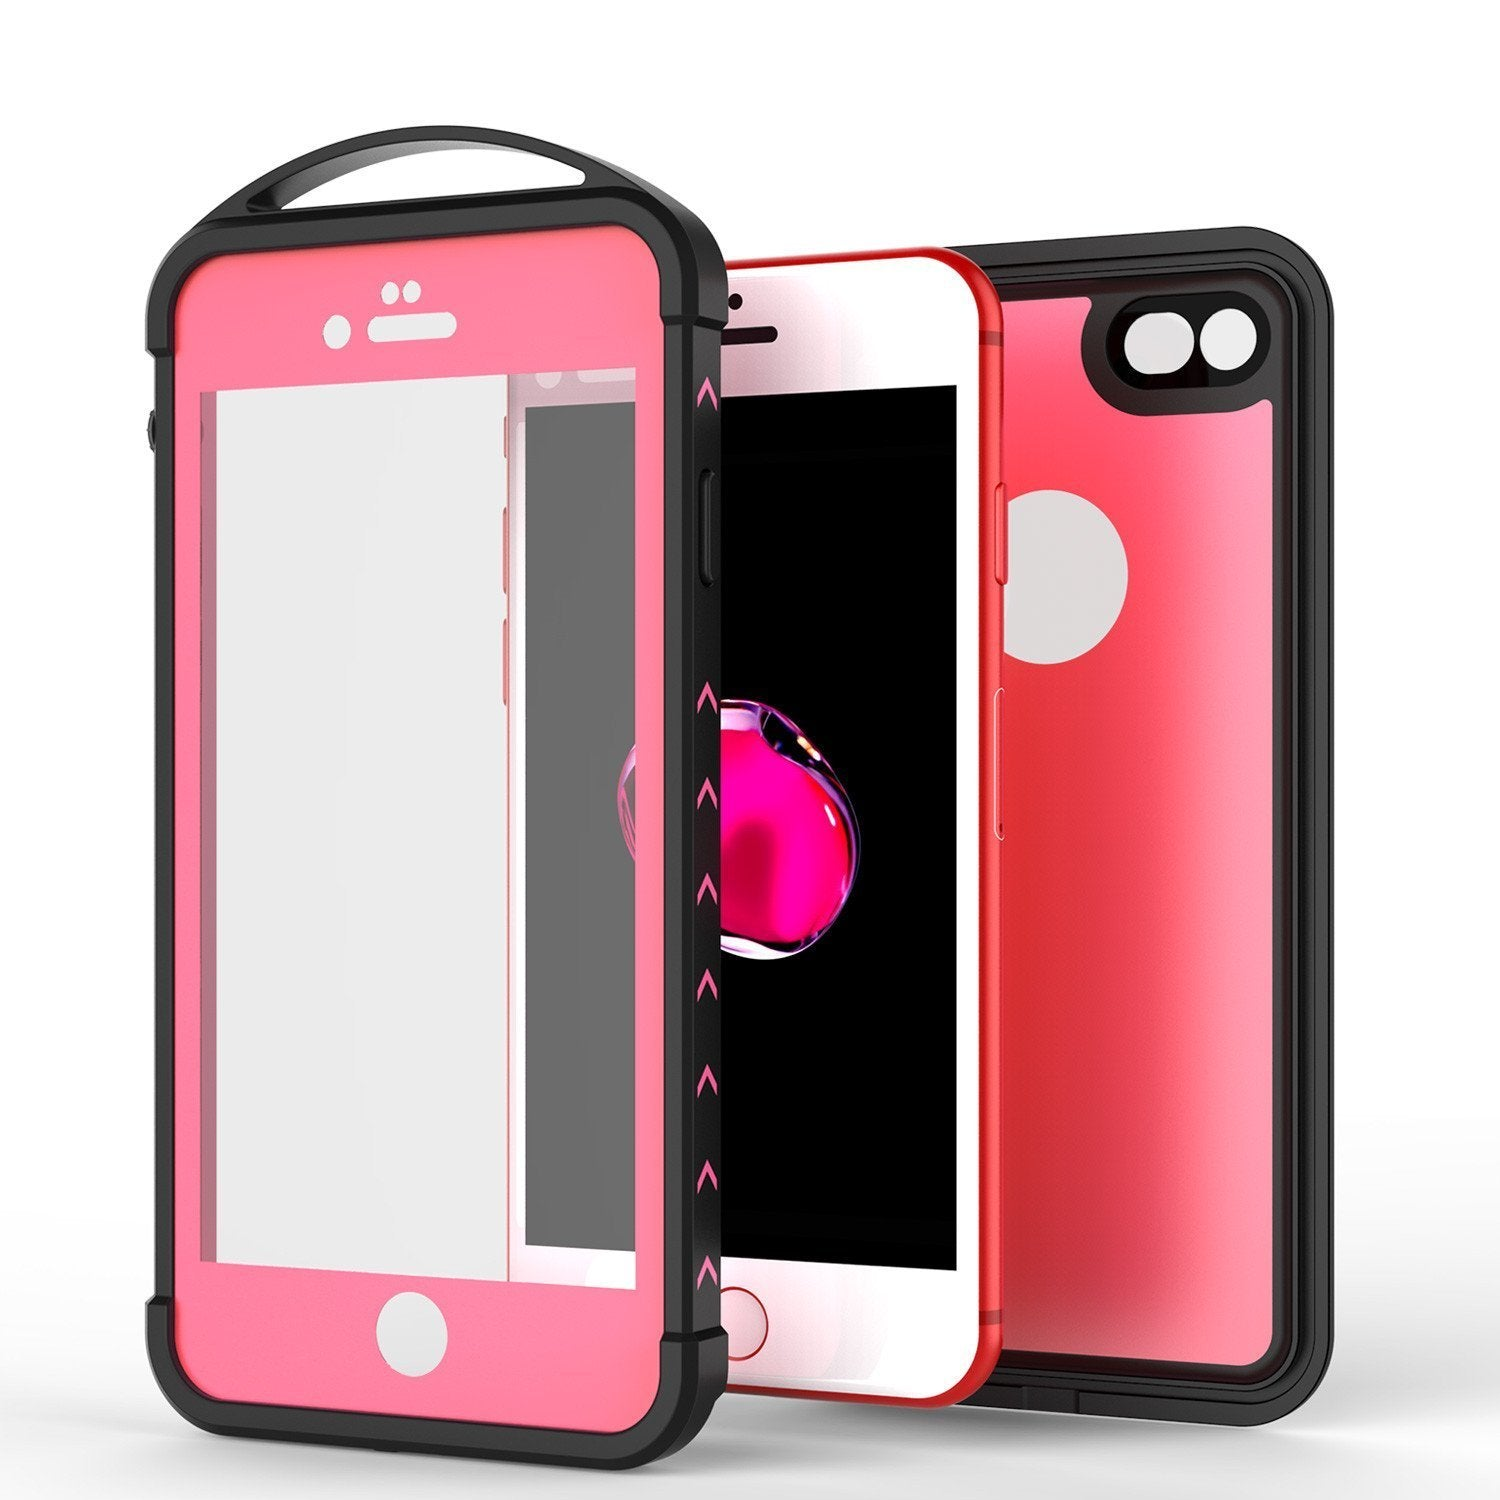 "iPhone SE (4.7"") Waterproof Case, Punkcase ALPINE Series, Pink 